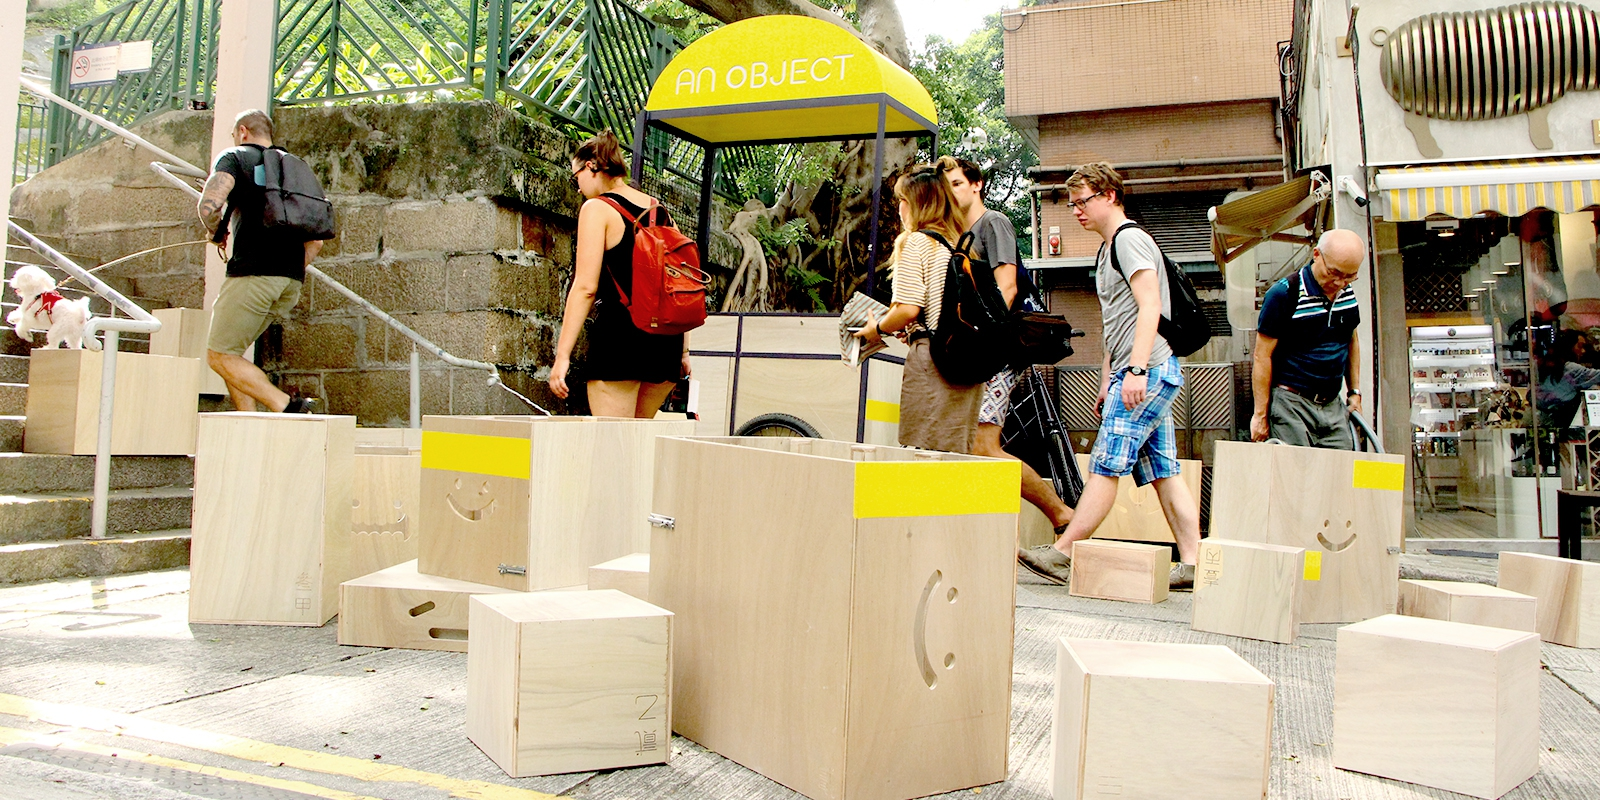 Selected Exhibit: An Object  Sarah Mui (BSSc 2006) Re-envision public space by using mobile furniture parts to create different scenarios on the street.